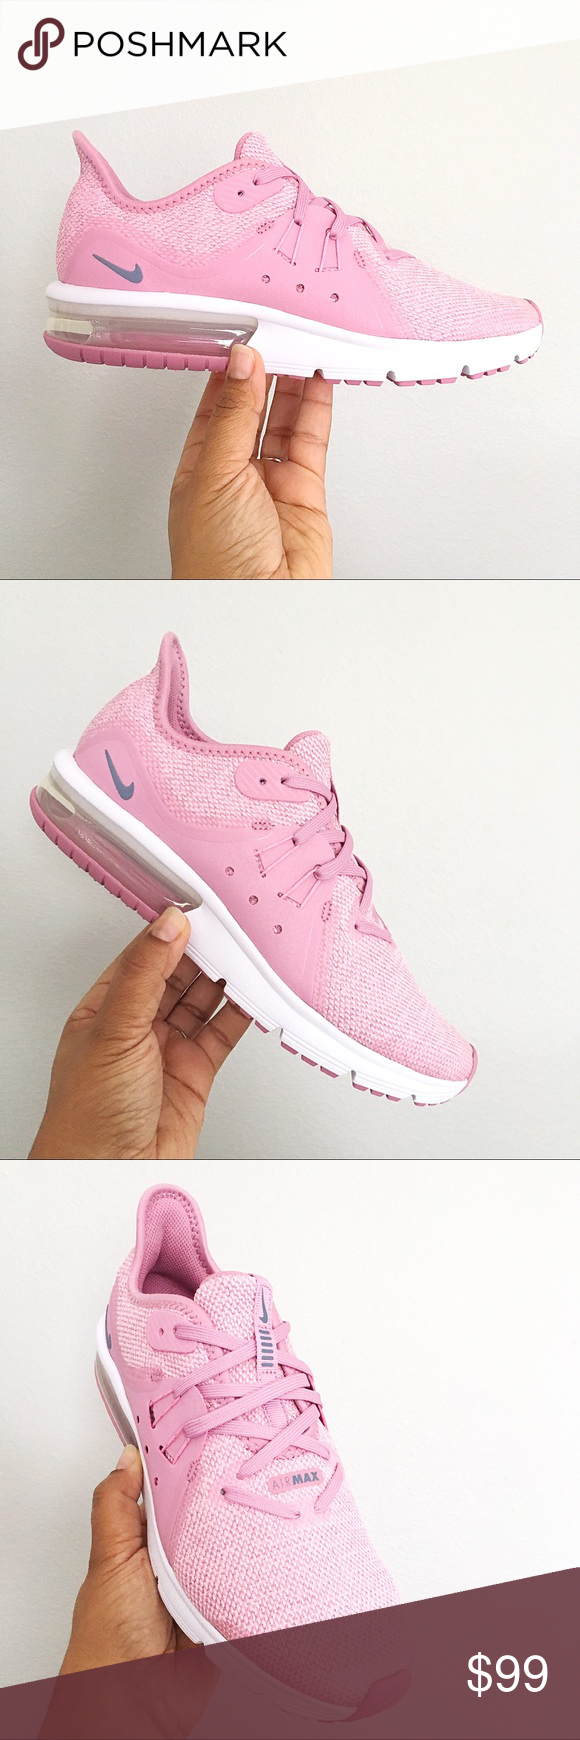 3a3b0f47ab Nike Air Max Sequent 3 Elemental Pink Women Size 8 Brand New in Box with Lid